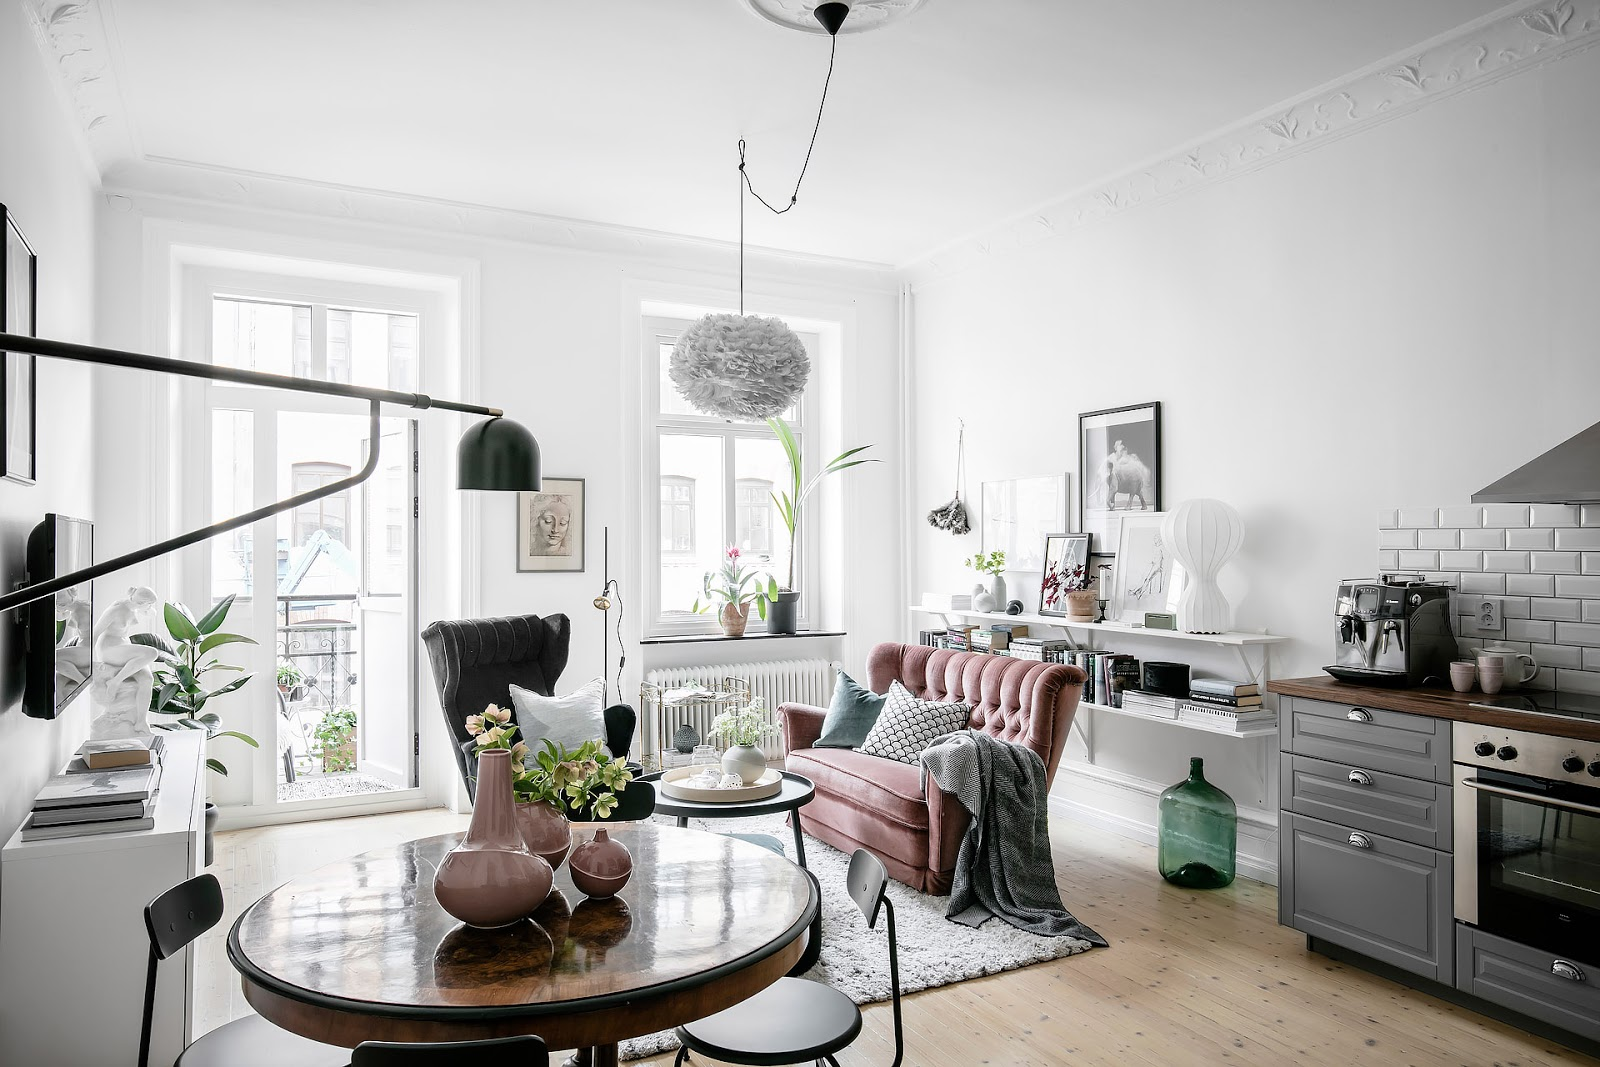 Lovable Small Scandinavian Apartment Design Attractor Bloglovin